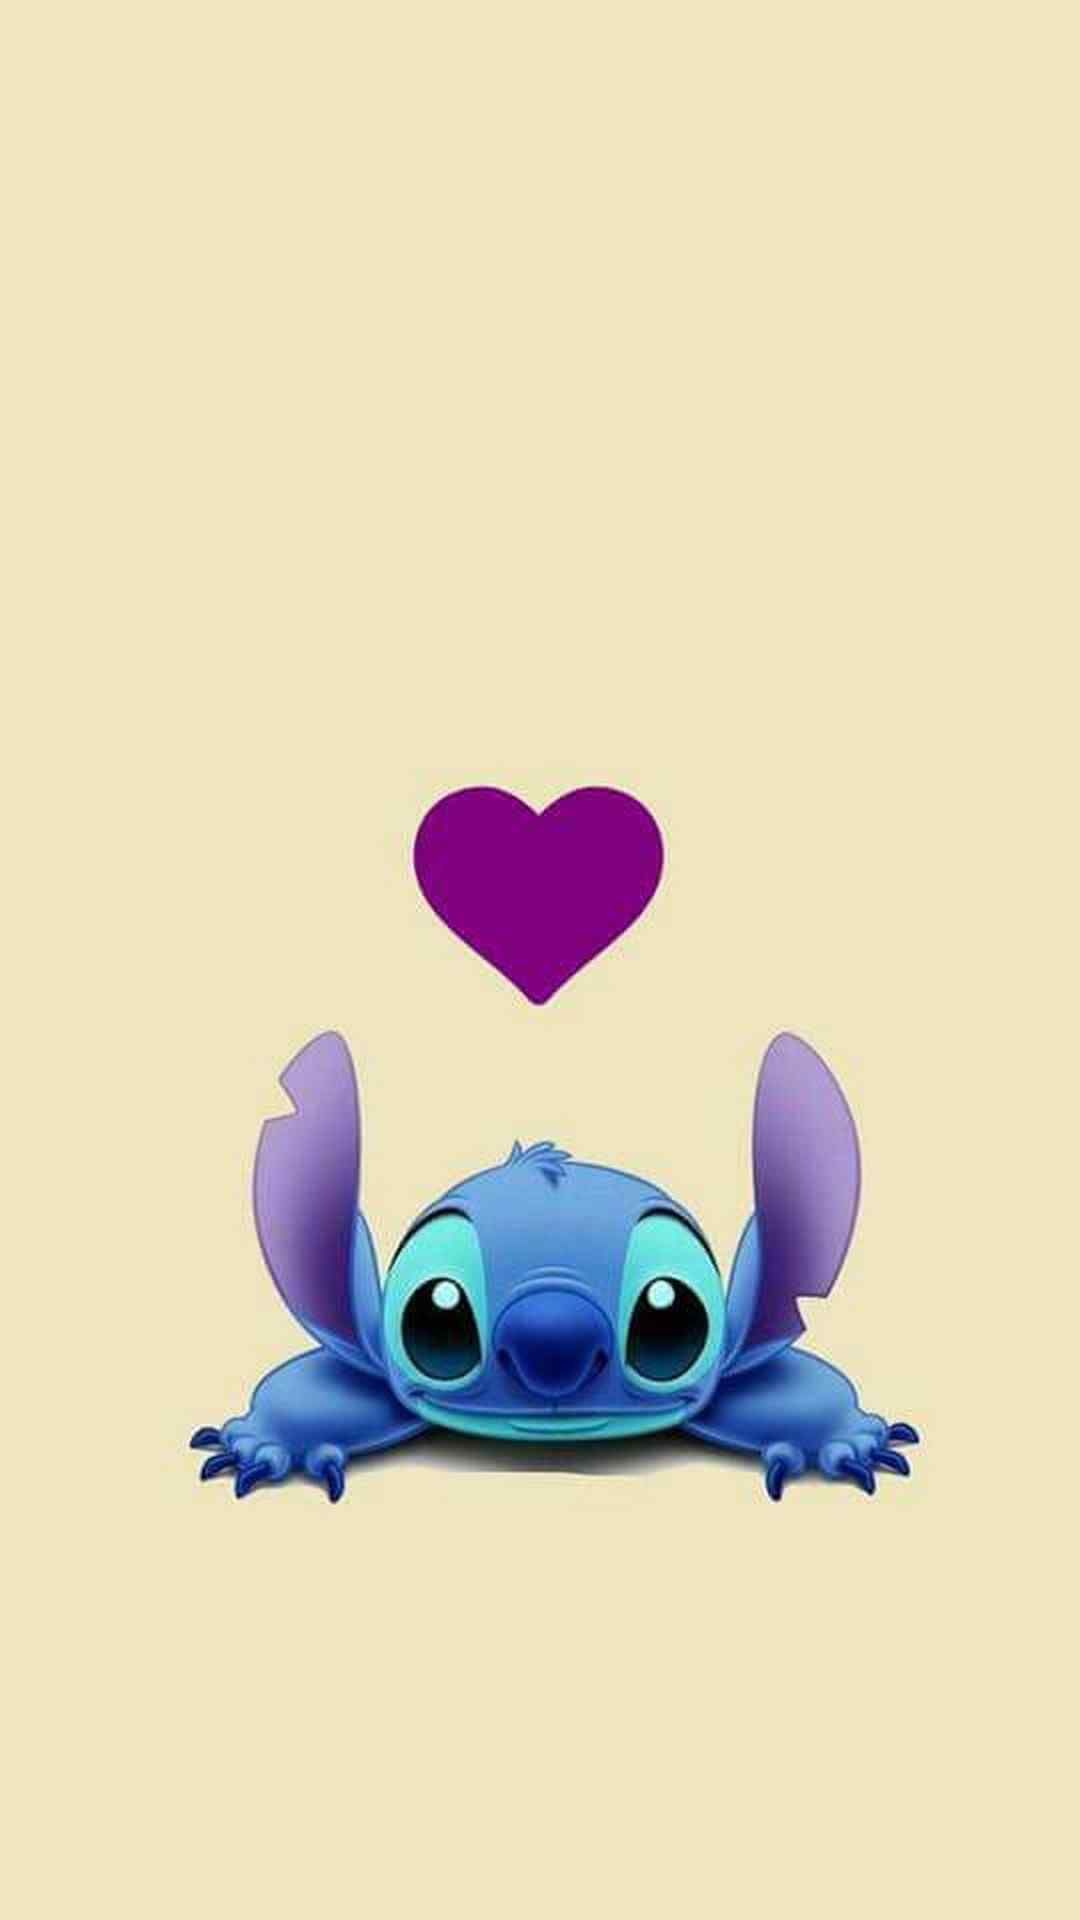 Stitch Wallpaper High Quality Resolution Hupages Download Iphone Wallpapers Cartoon Wallpaper Cartoon Wallpaper Iphone Cute Disney Wallpaper